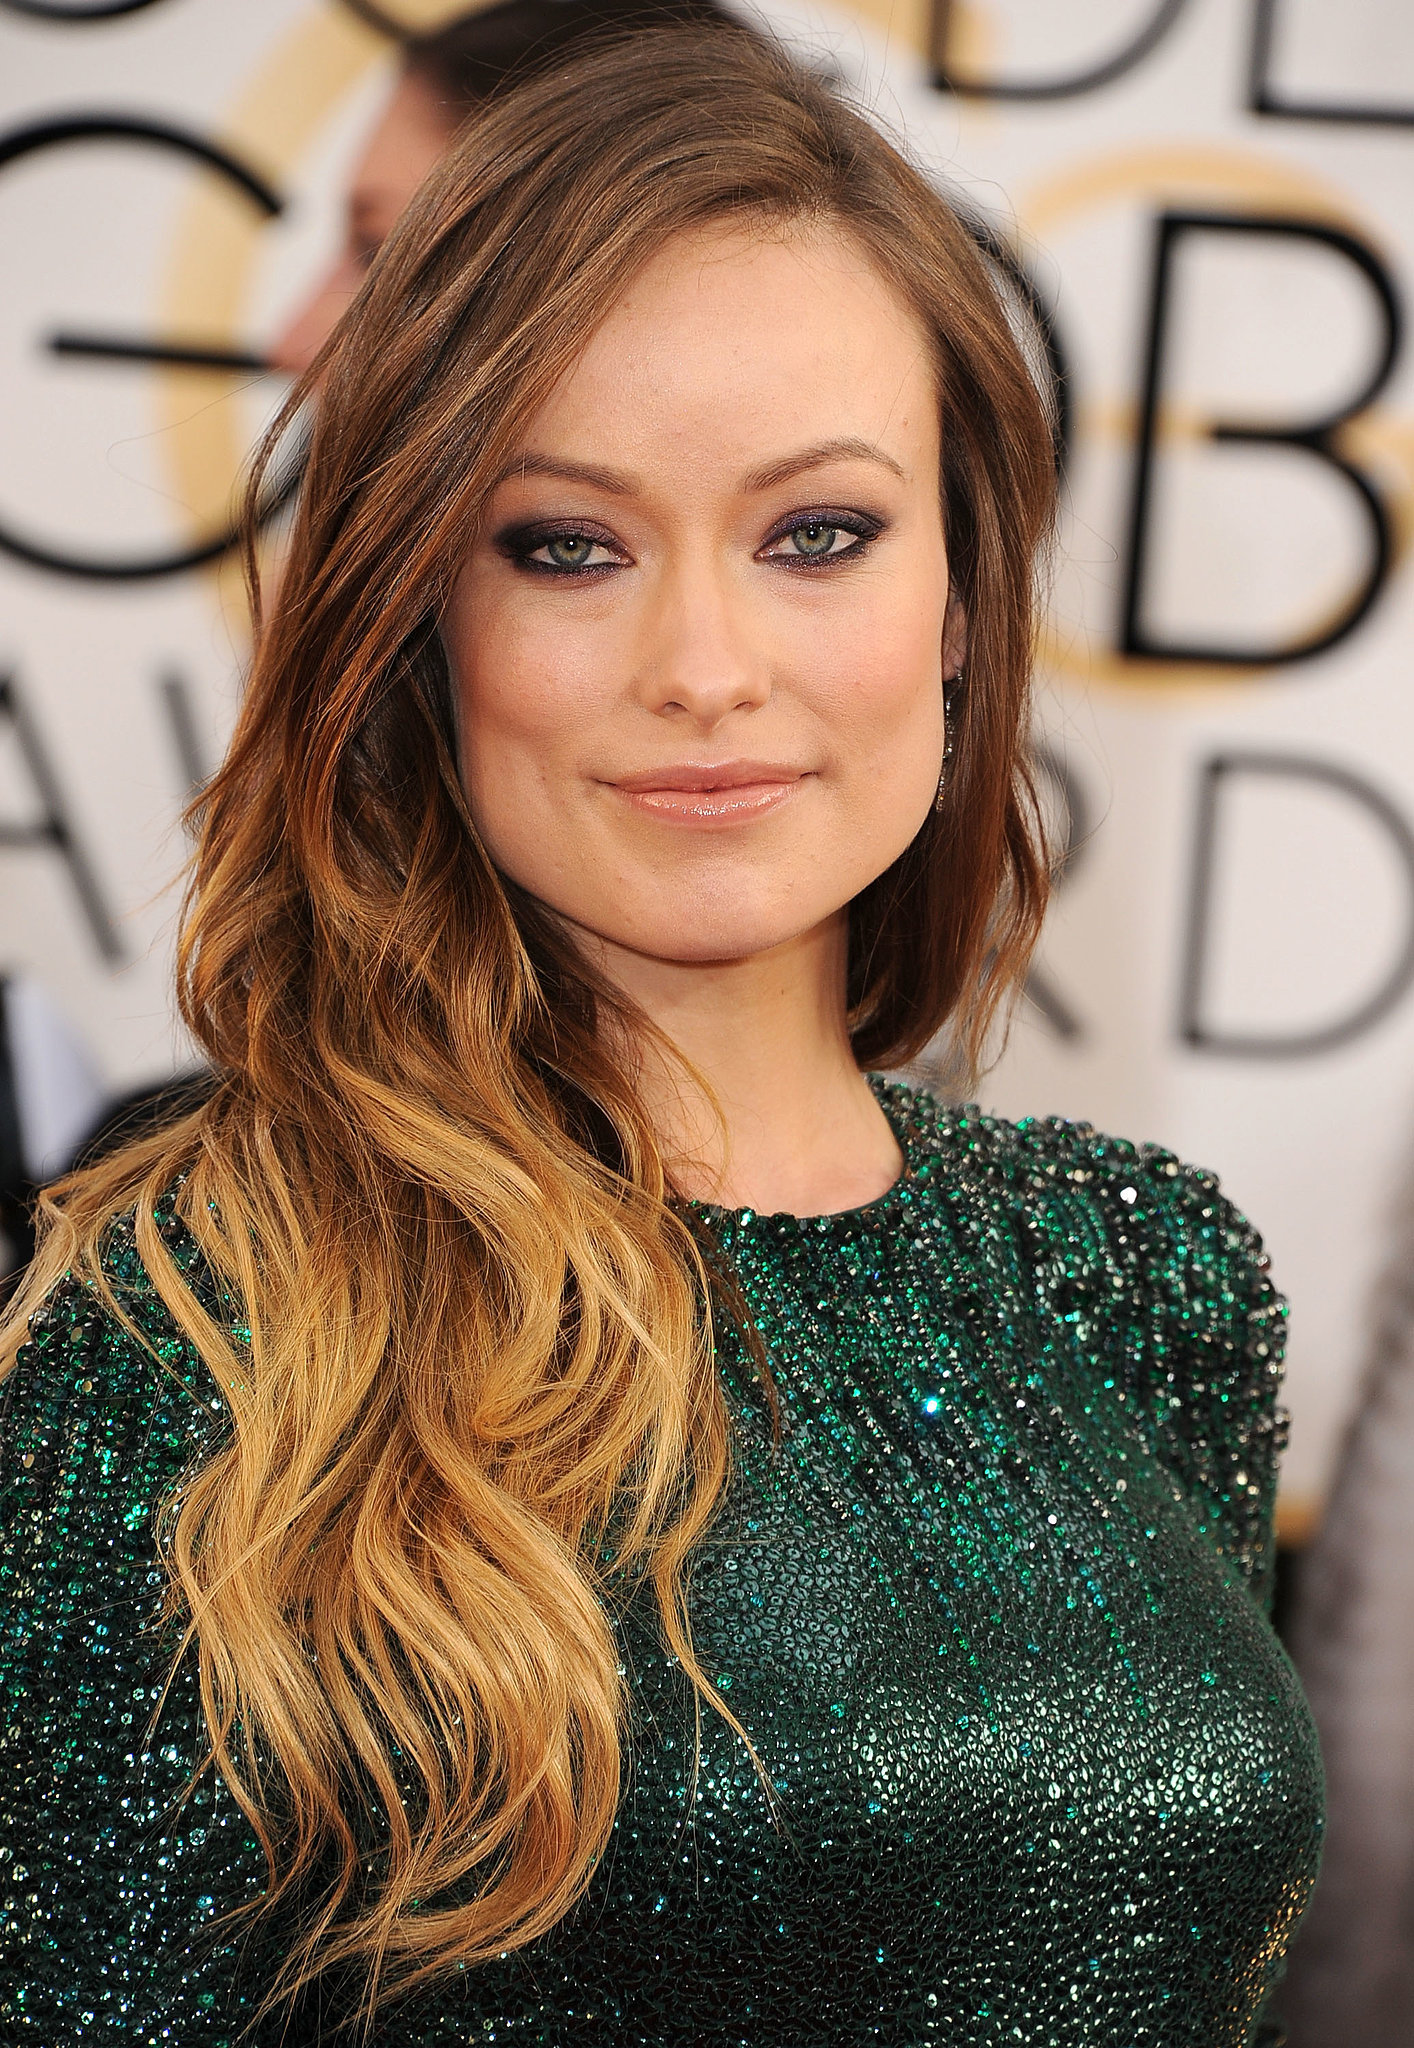 Olivia Wilde's Ombre Waves